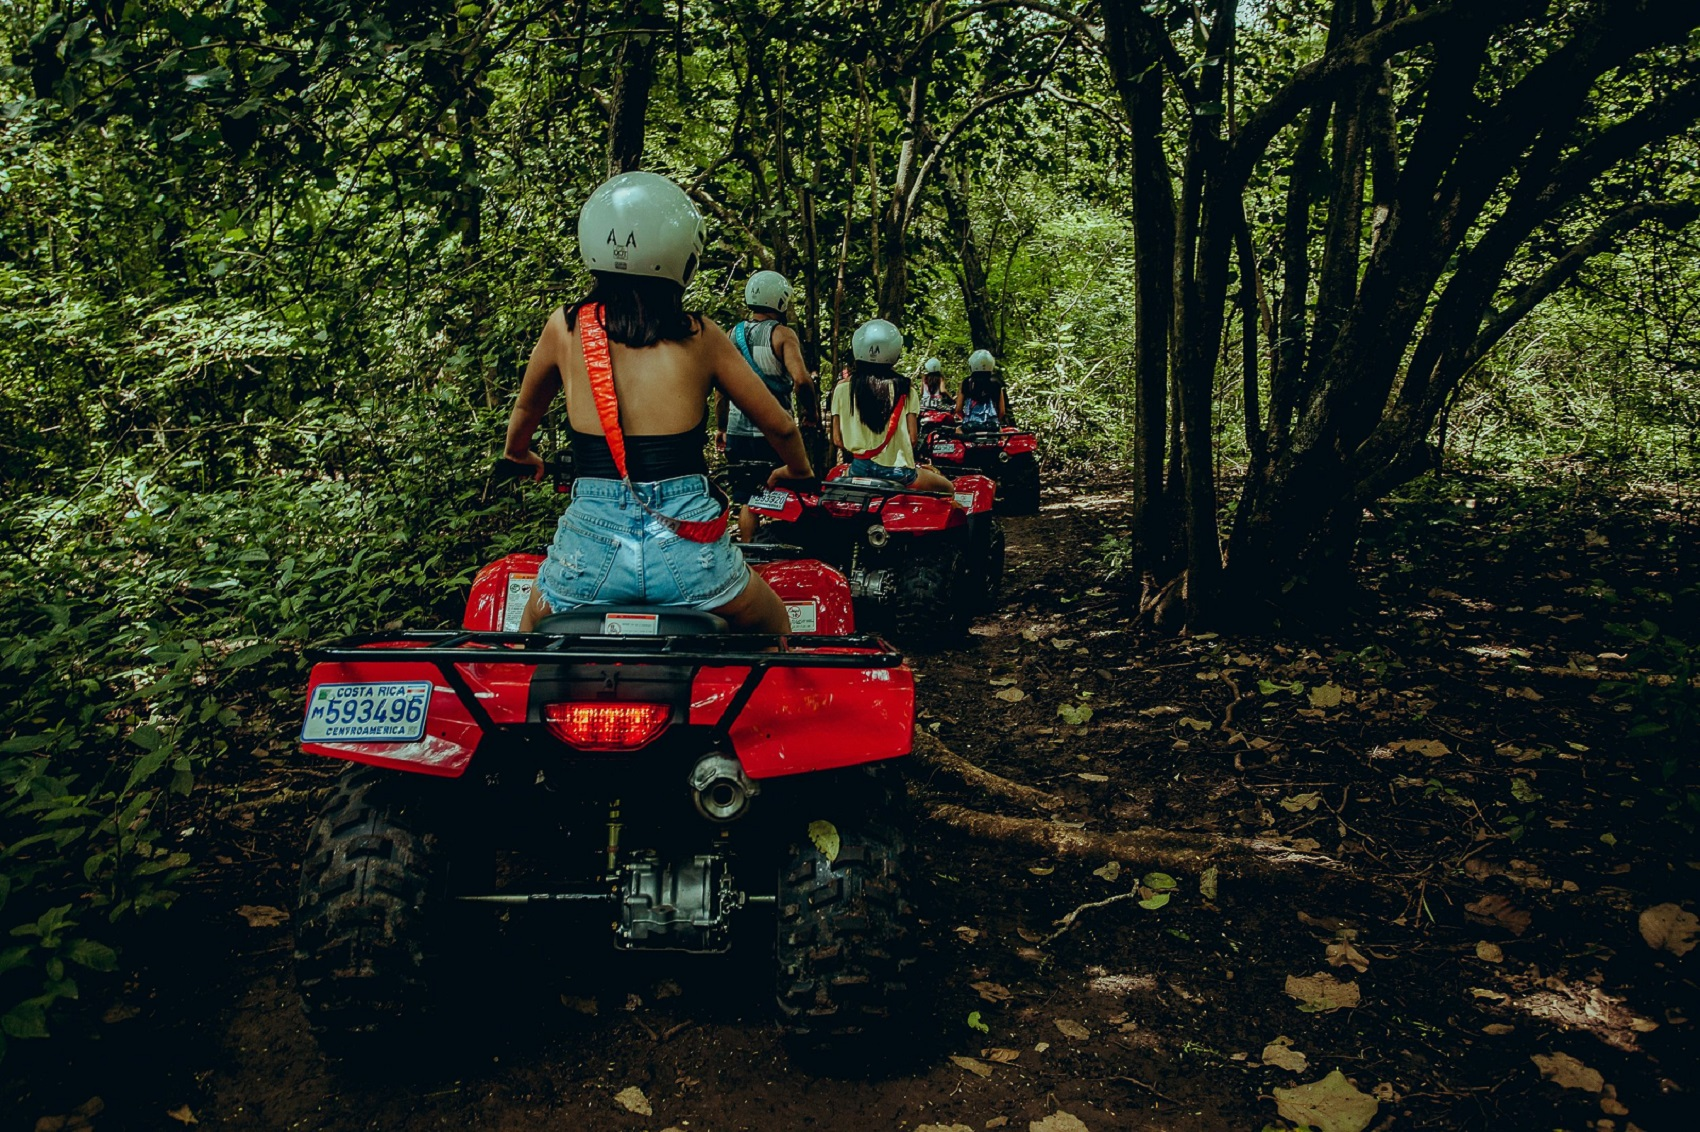 Best ATV Tamarindo Tour - Native's Way Costa Rica - Tamarindo Tours & Transfers